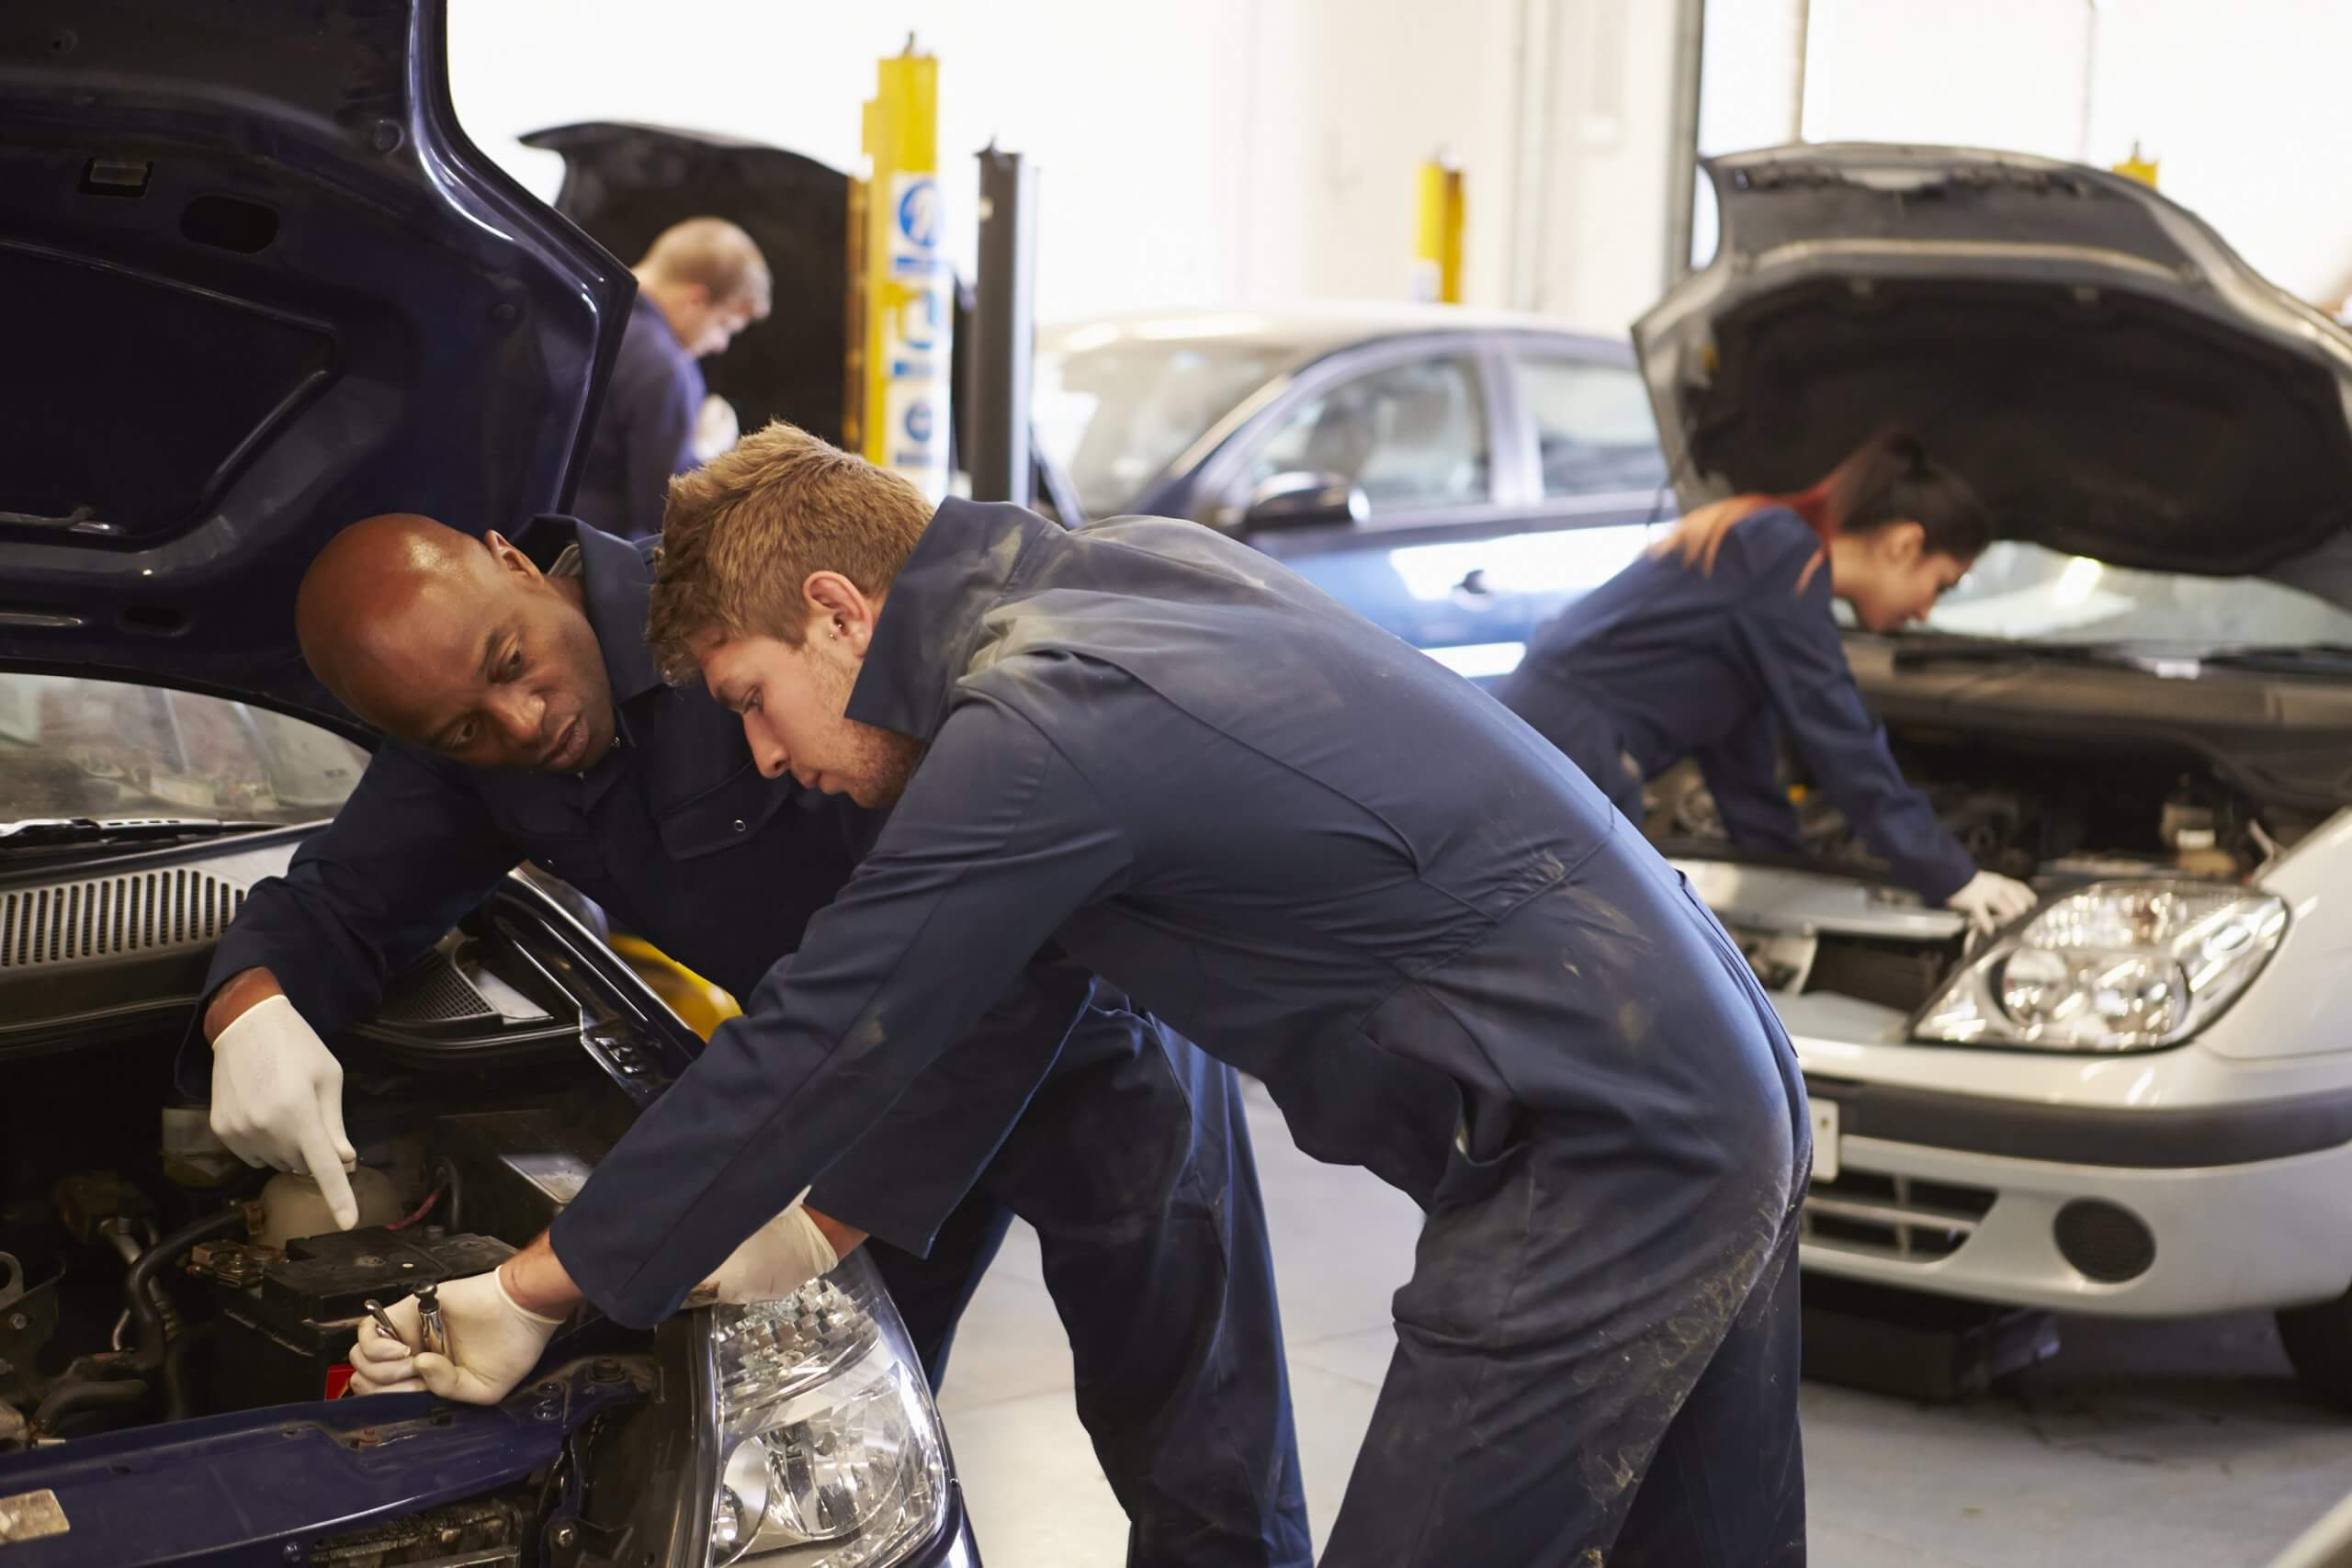 three mechanics working on separate cars in auto workshop, range of car services conducted simultaneously